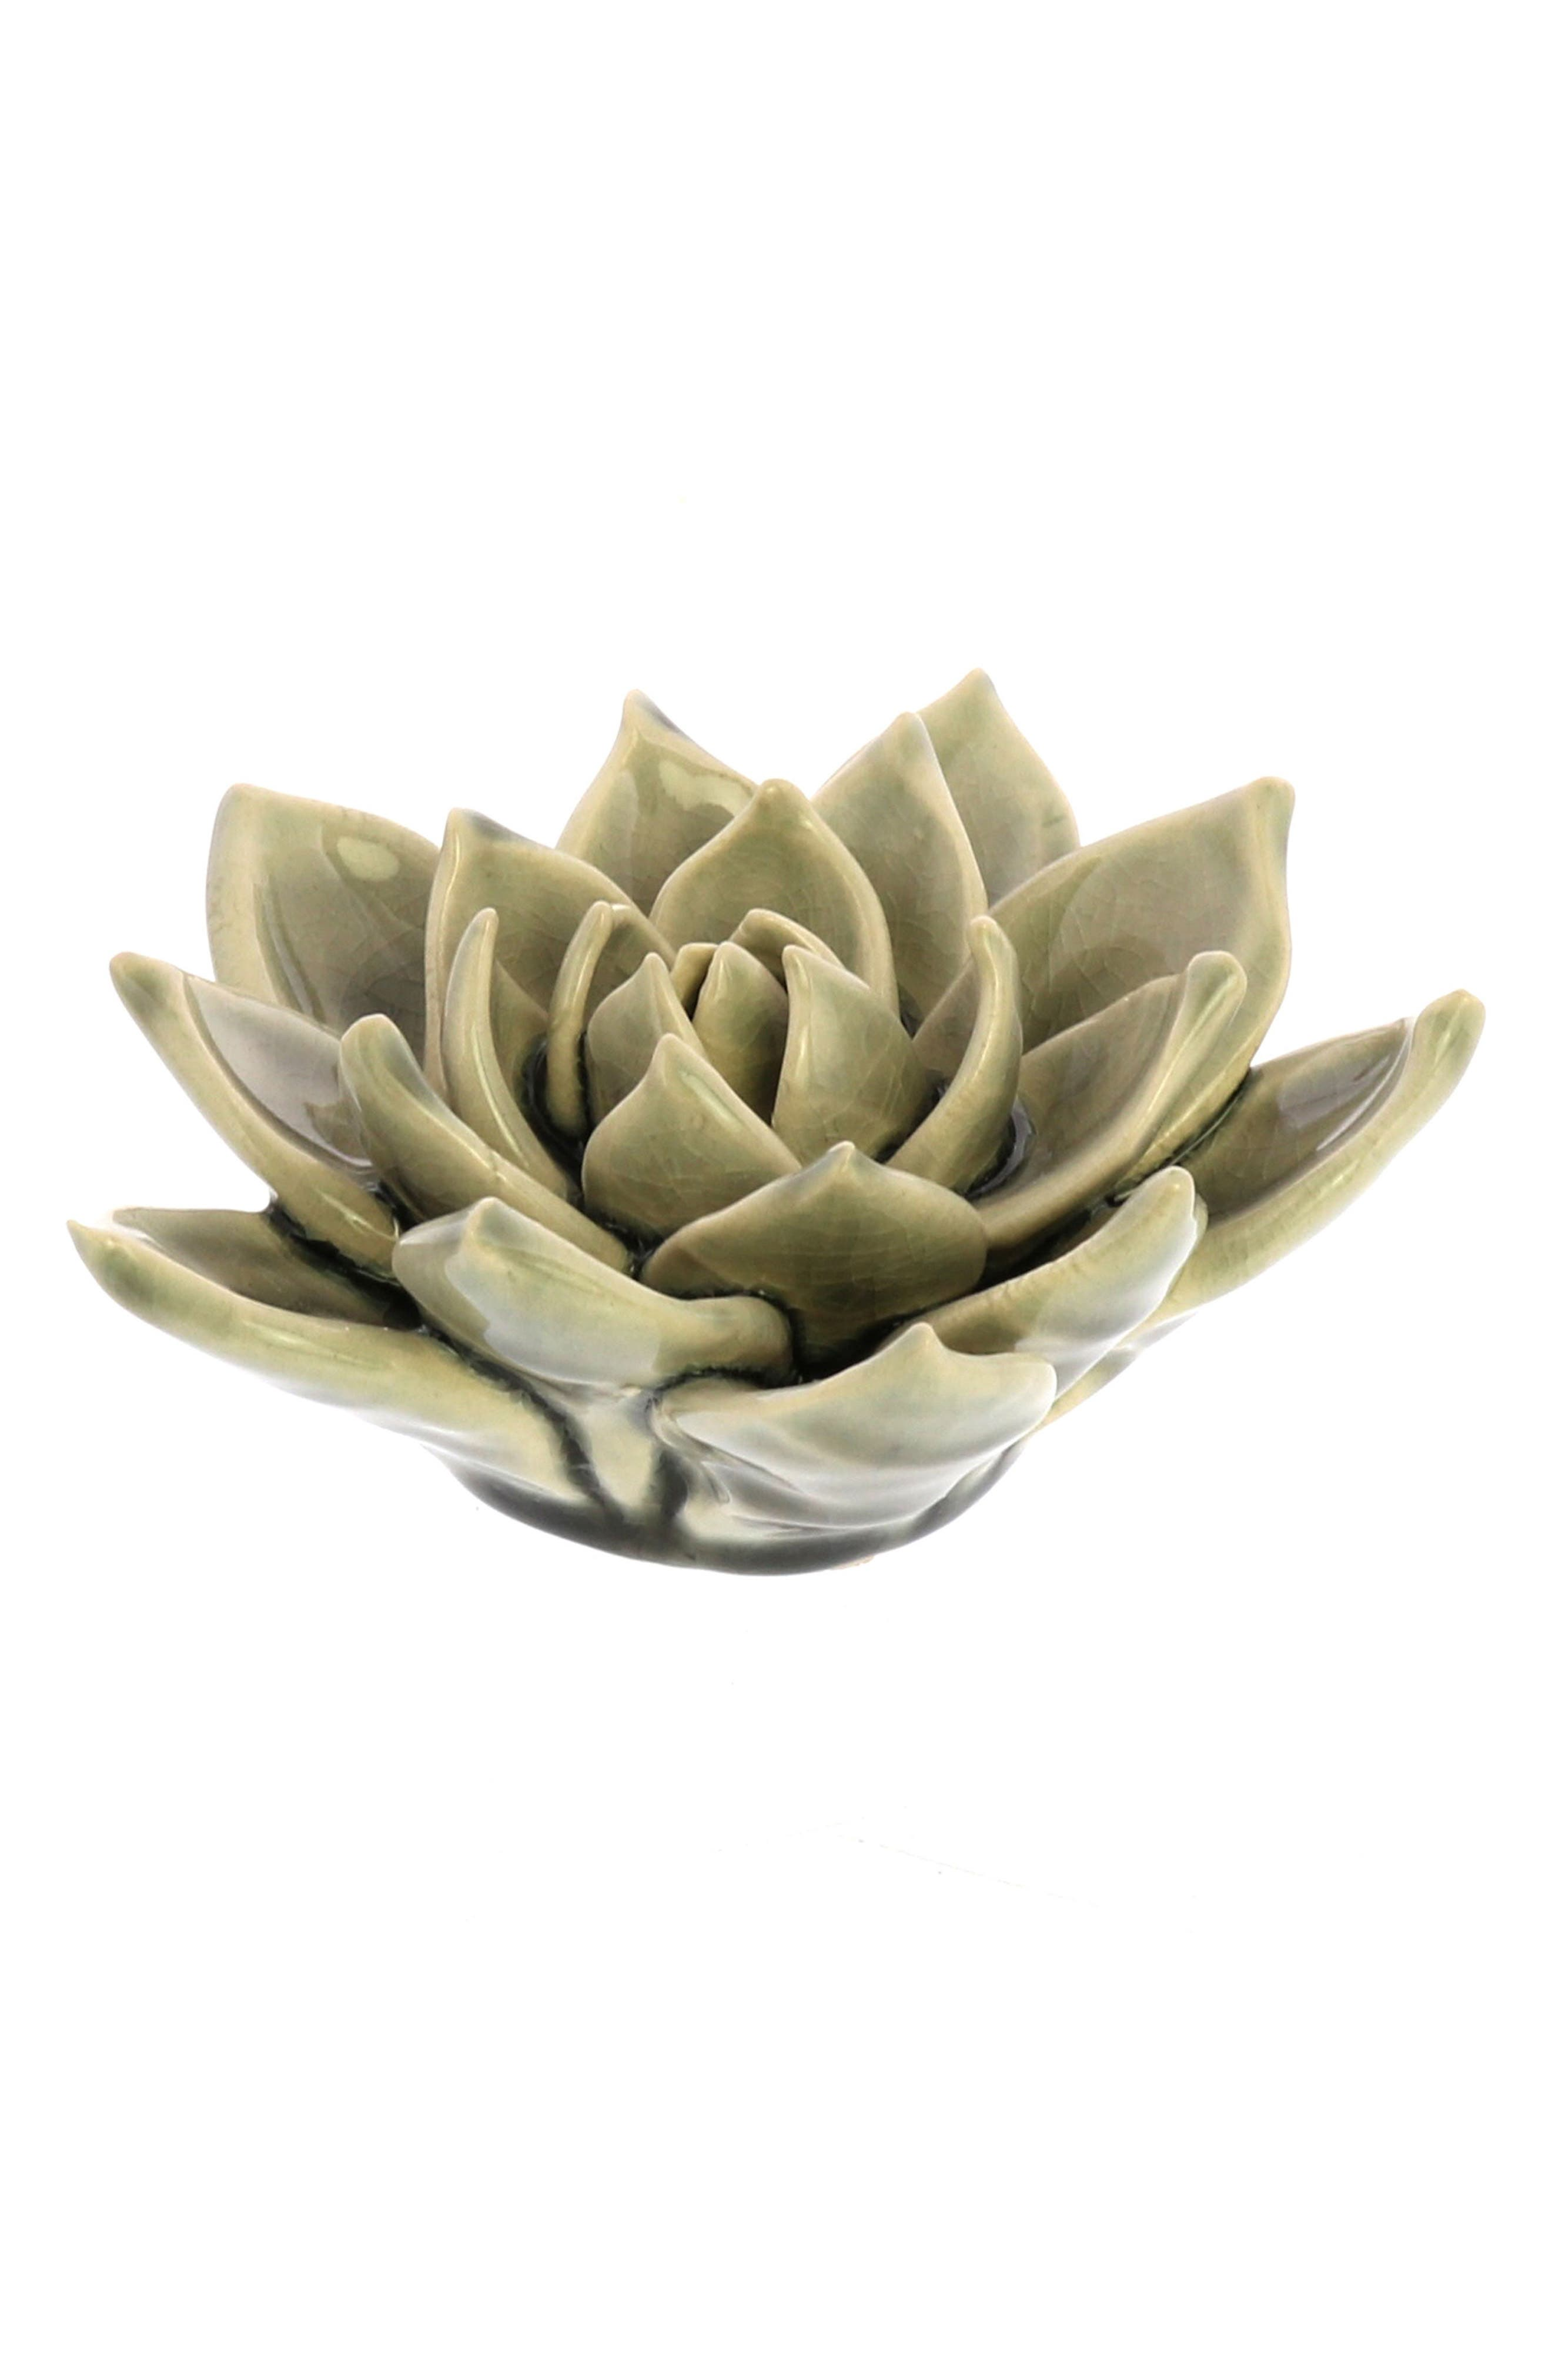 Ceramic Succulent,                             Main thumbnail 1, color,                             GREY